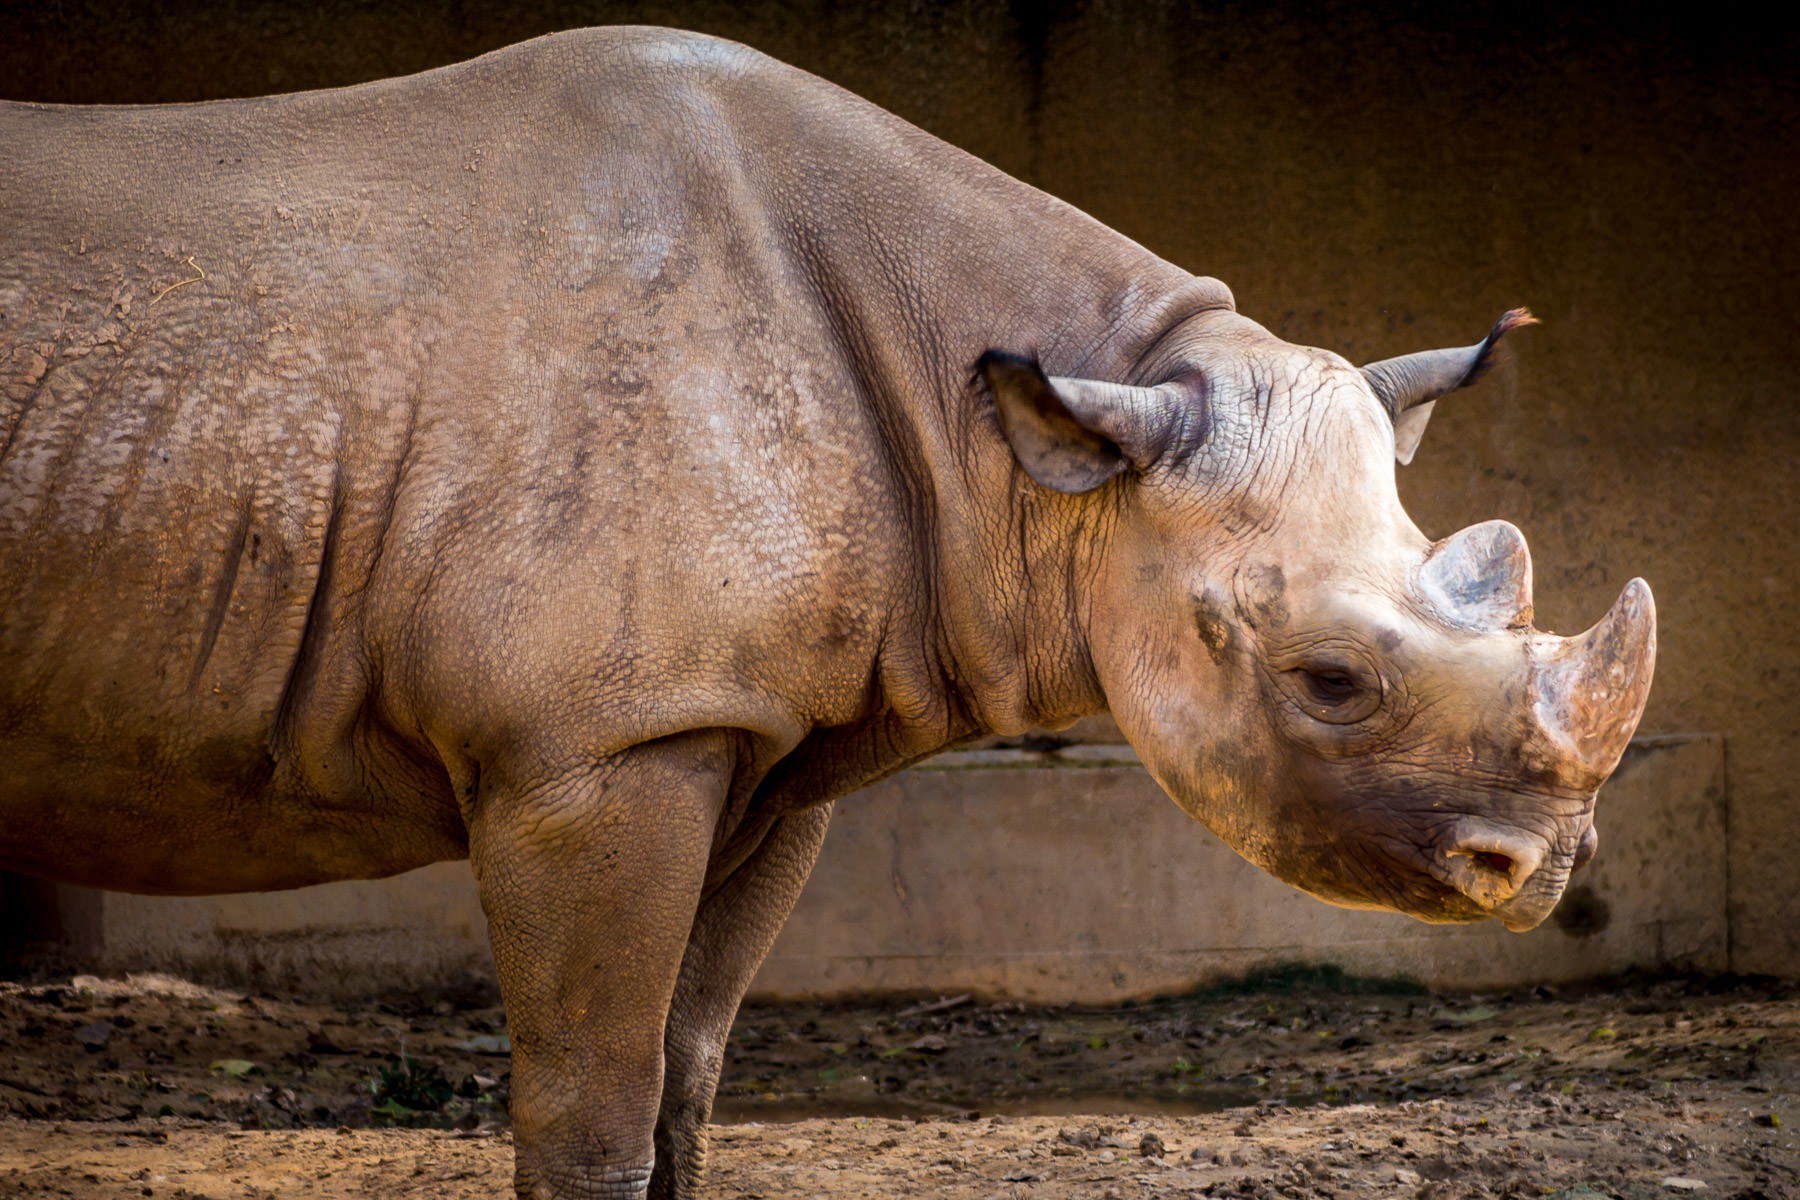 A rhinoceros spotted at the Caldwell Zoo in Tyler, Texas.